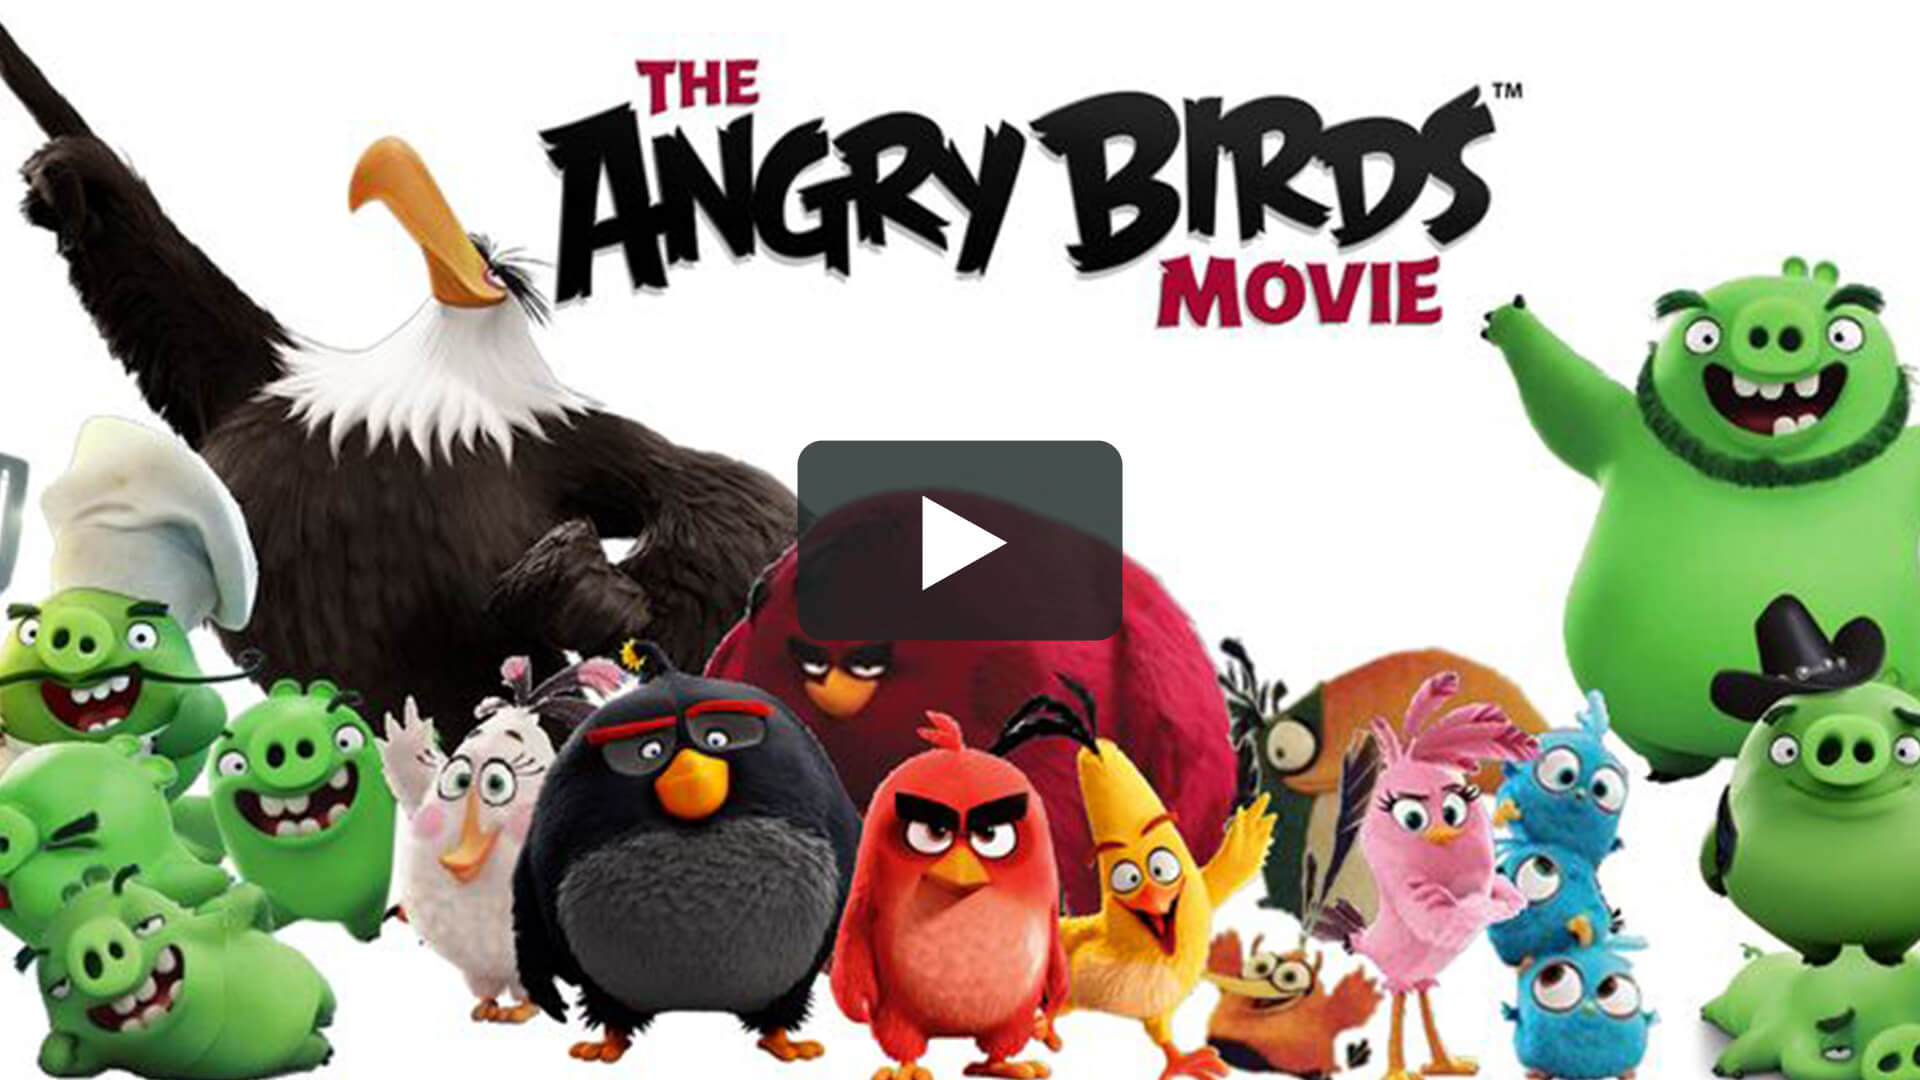 The Angry Birds Movie - 憤怒的小鳥